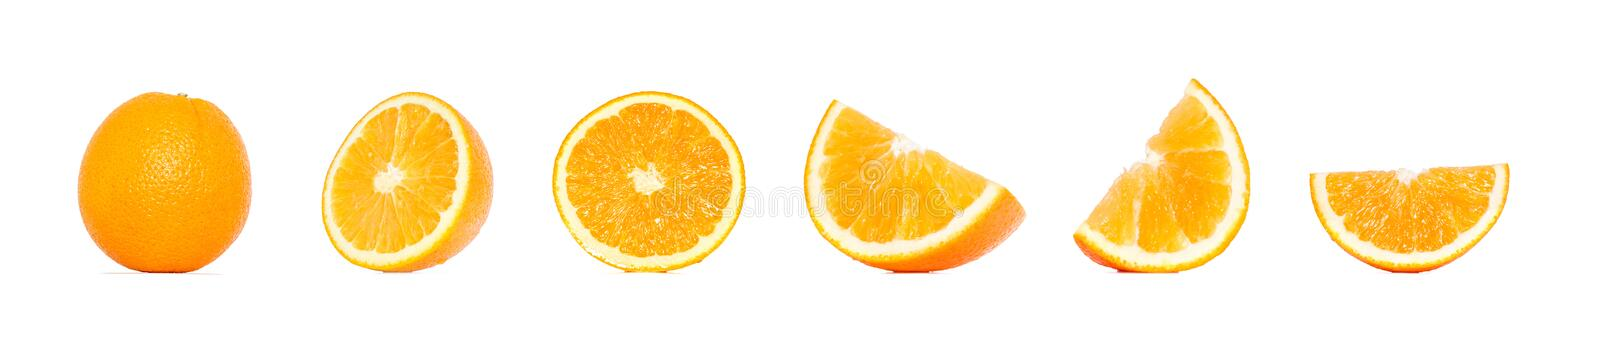 Orange fruit collection in different variations isolated over white background. Whole and sliced orange. stock photography